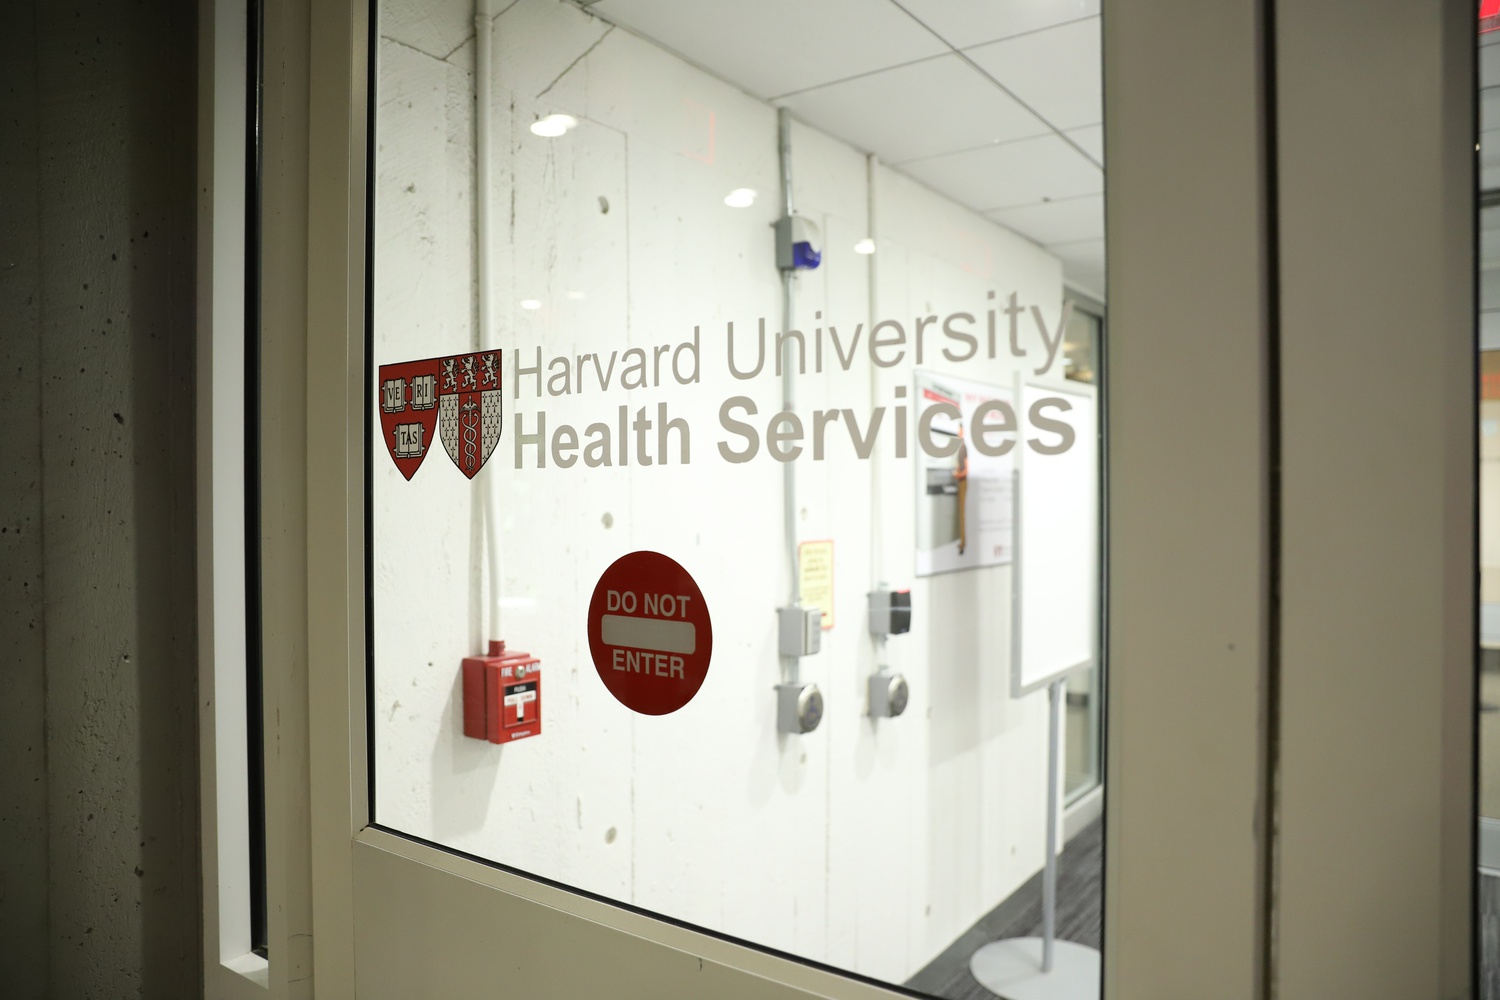 Harvard University Health Services released an email on Wednesday afternoon detailing its analysis on the recent coronavirus outbreak, discouraging travel to China until further notice.